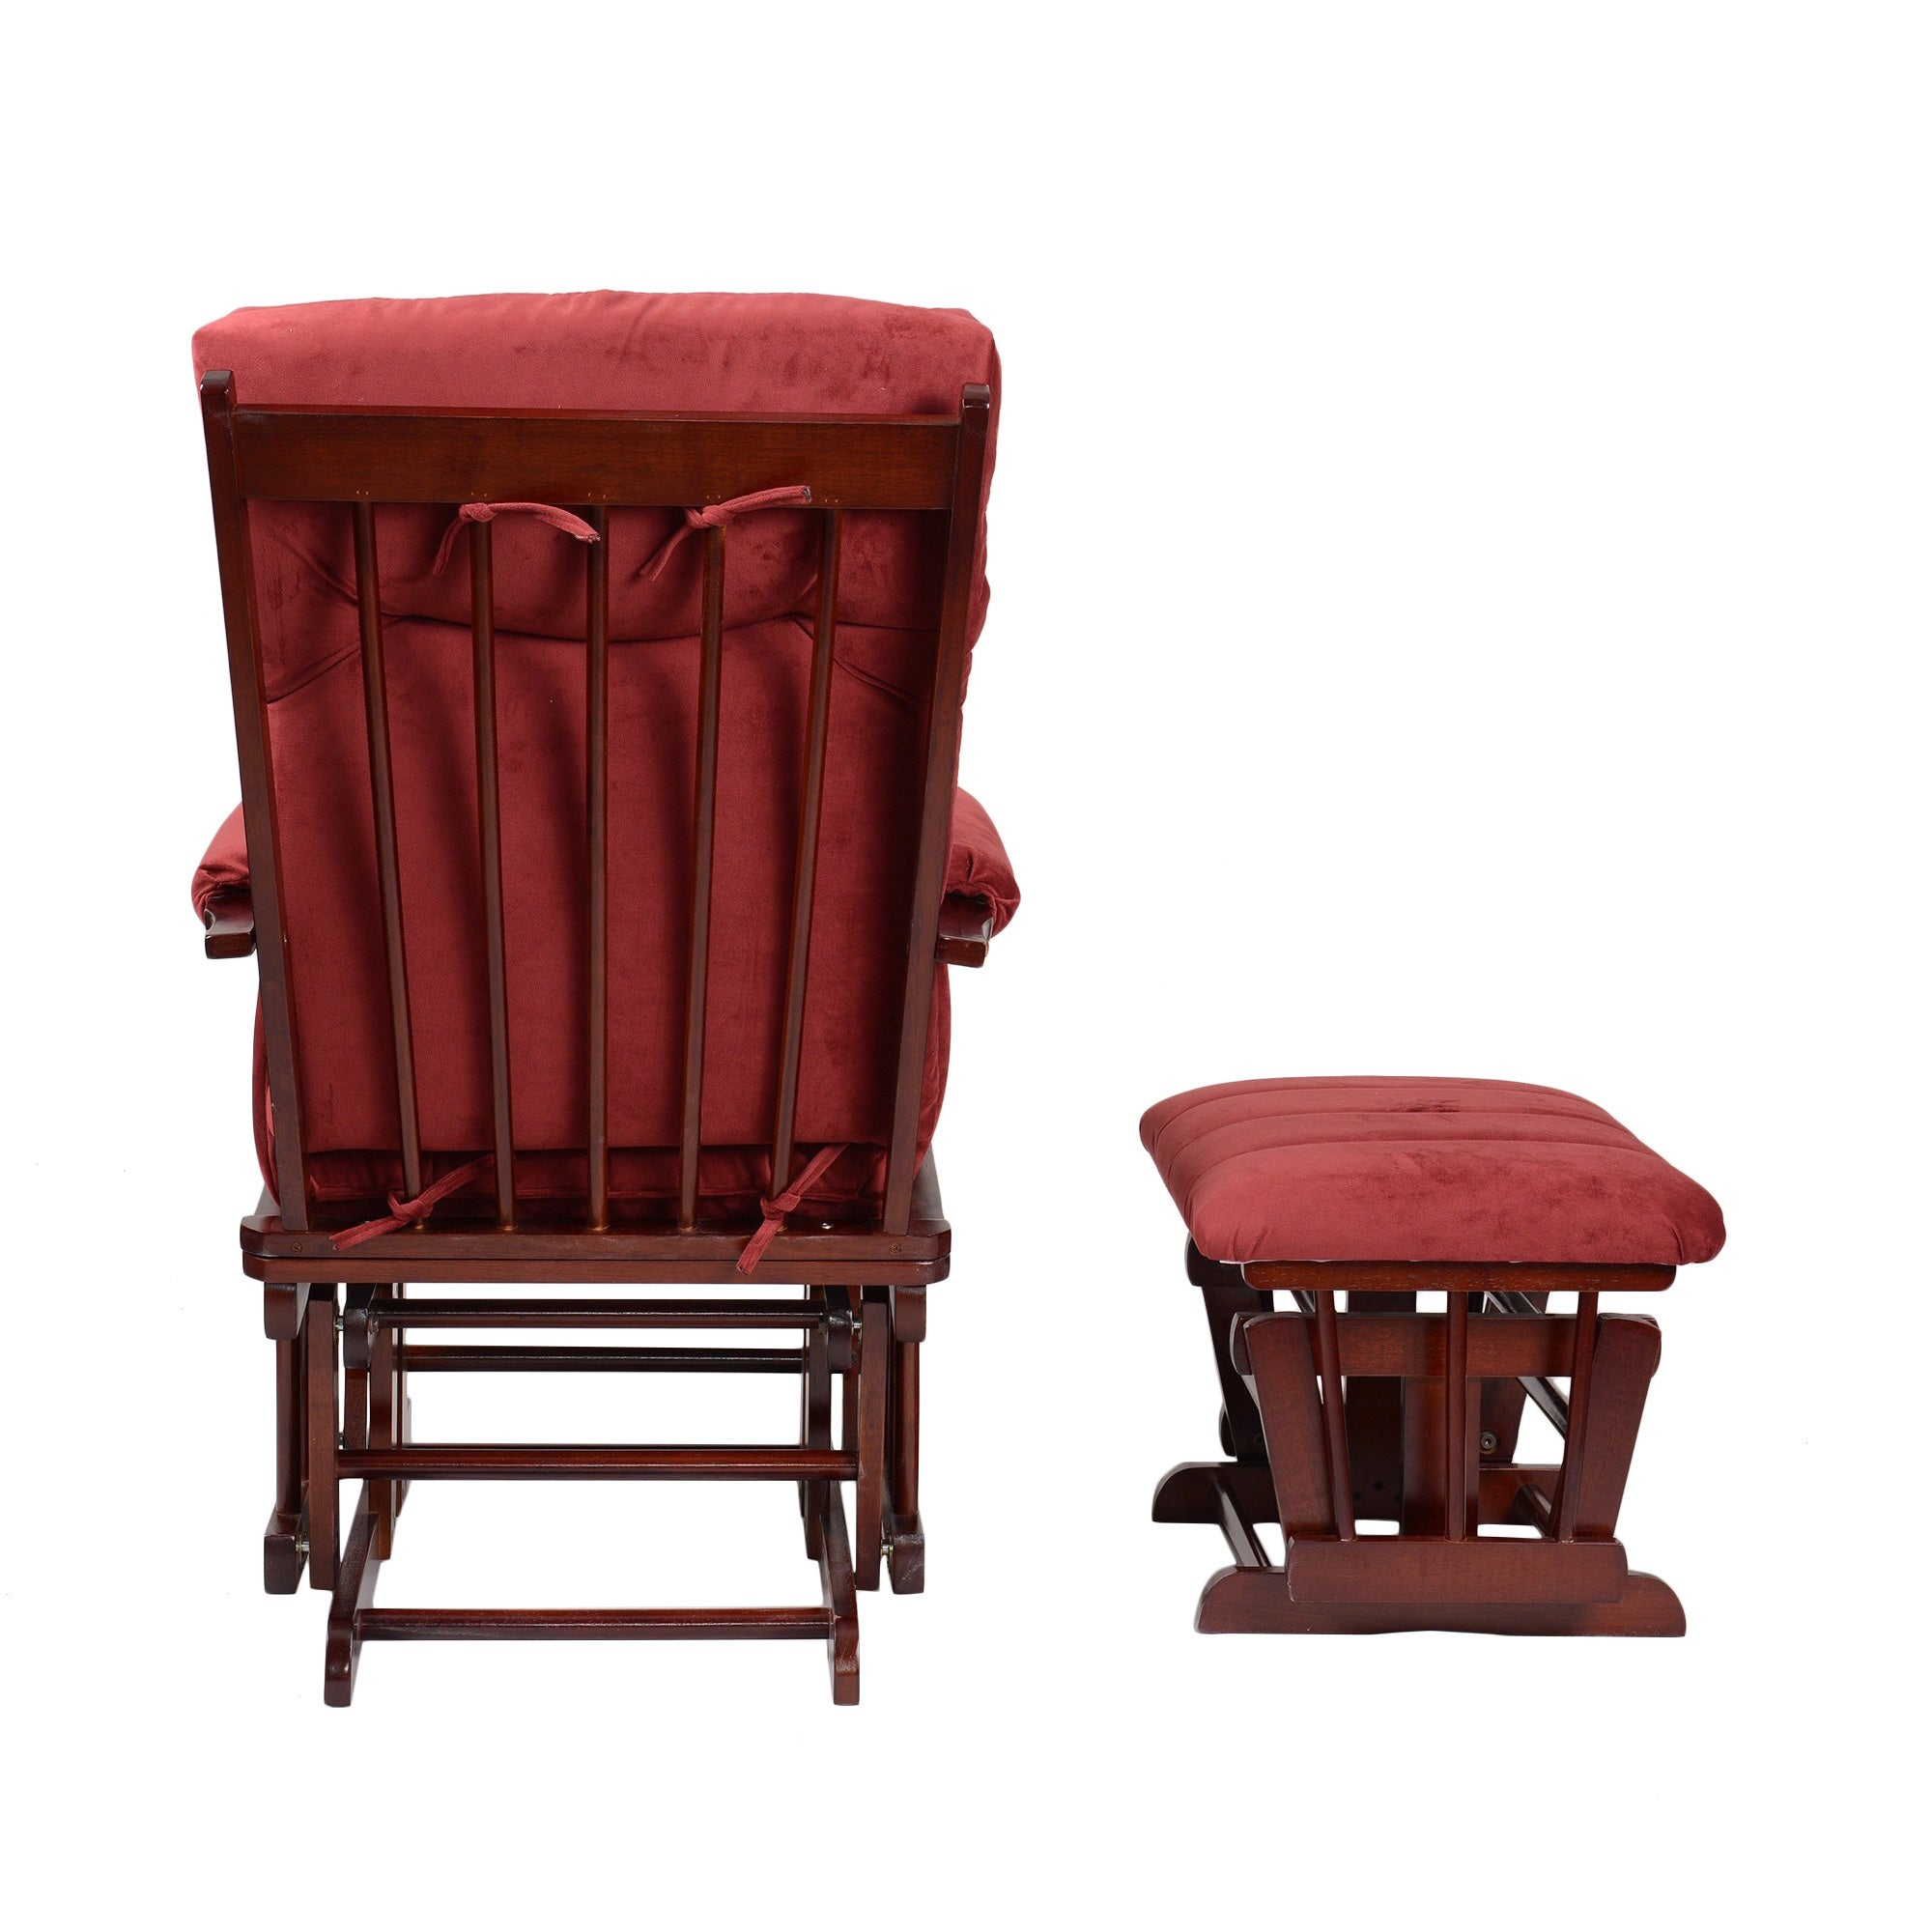 Fantastic Artiva Usa Home Deluxe Marsala Microfiber Cherry Finish Wood Glider And Ottoman Set Gmtry Best Dining Table And Chair Ideas Images Gmtryco